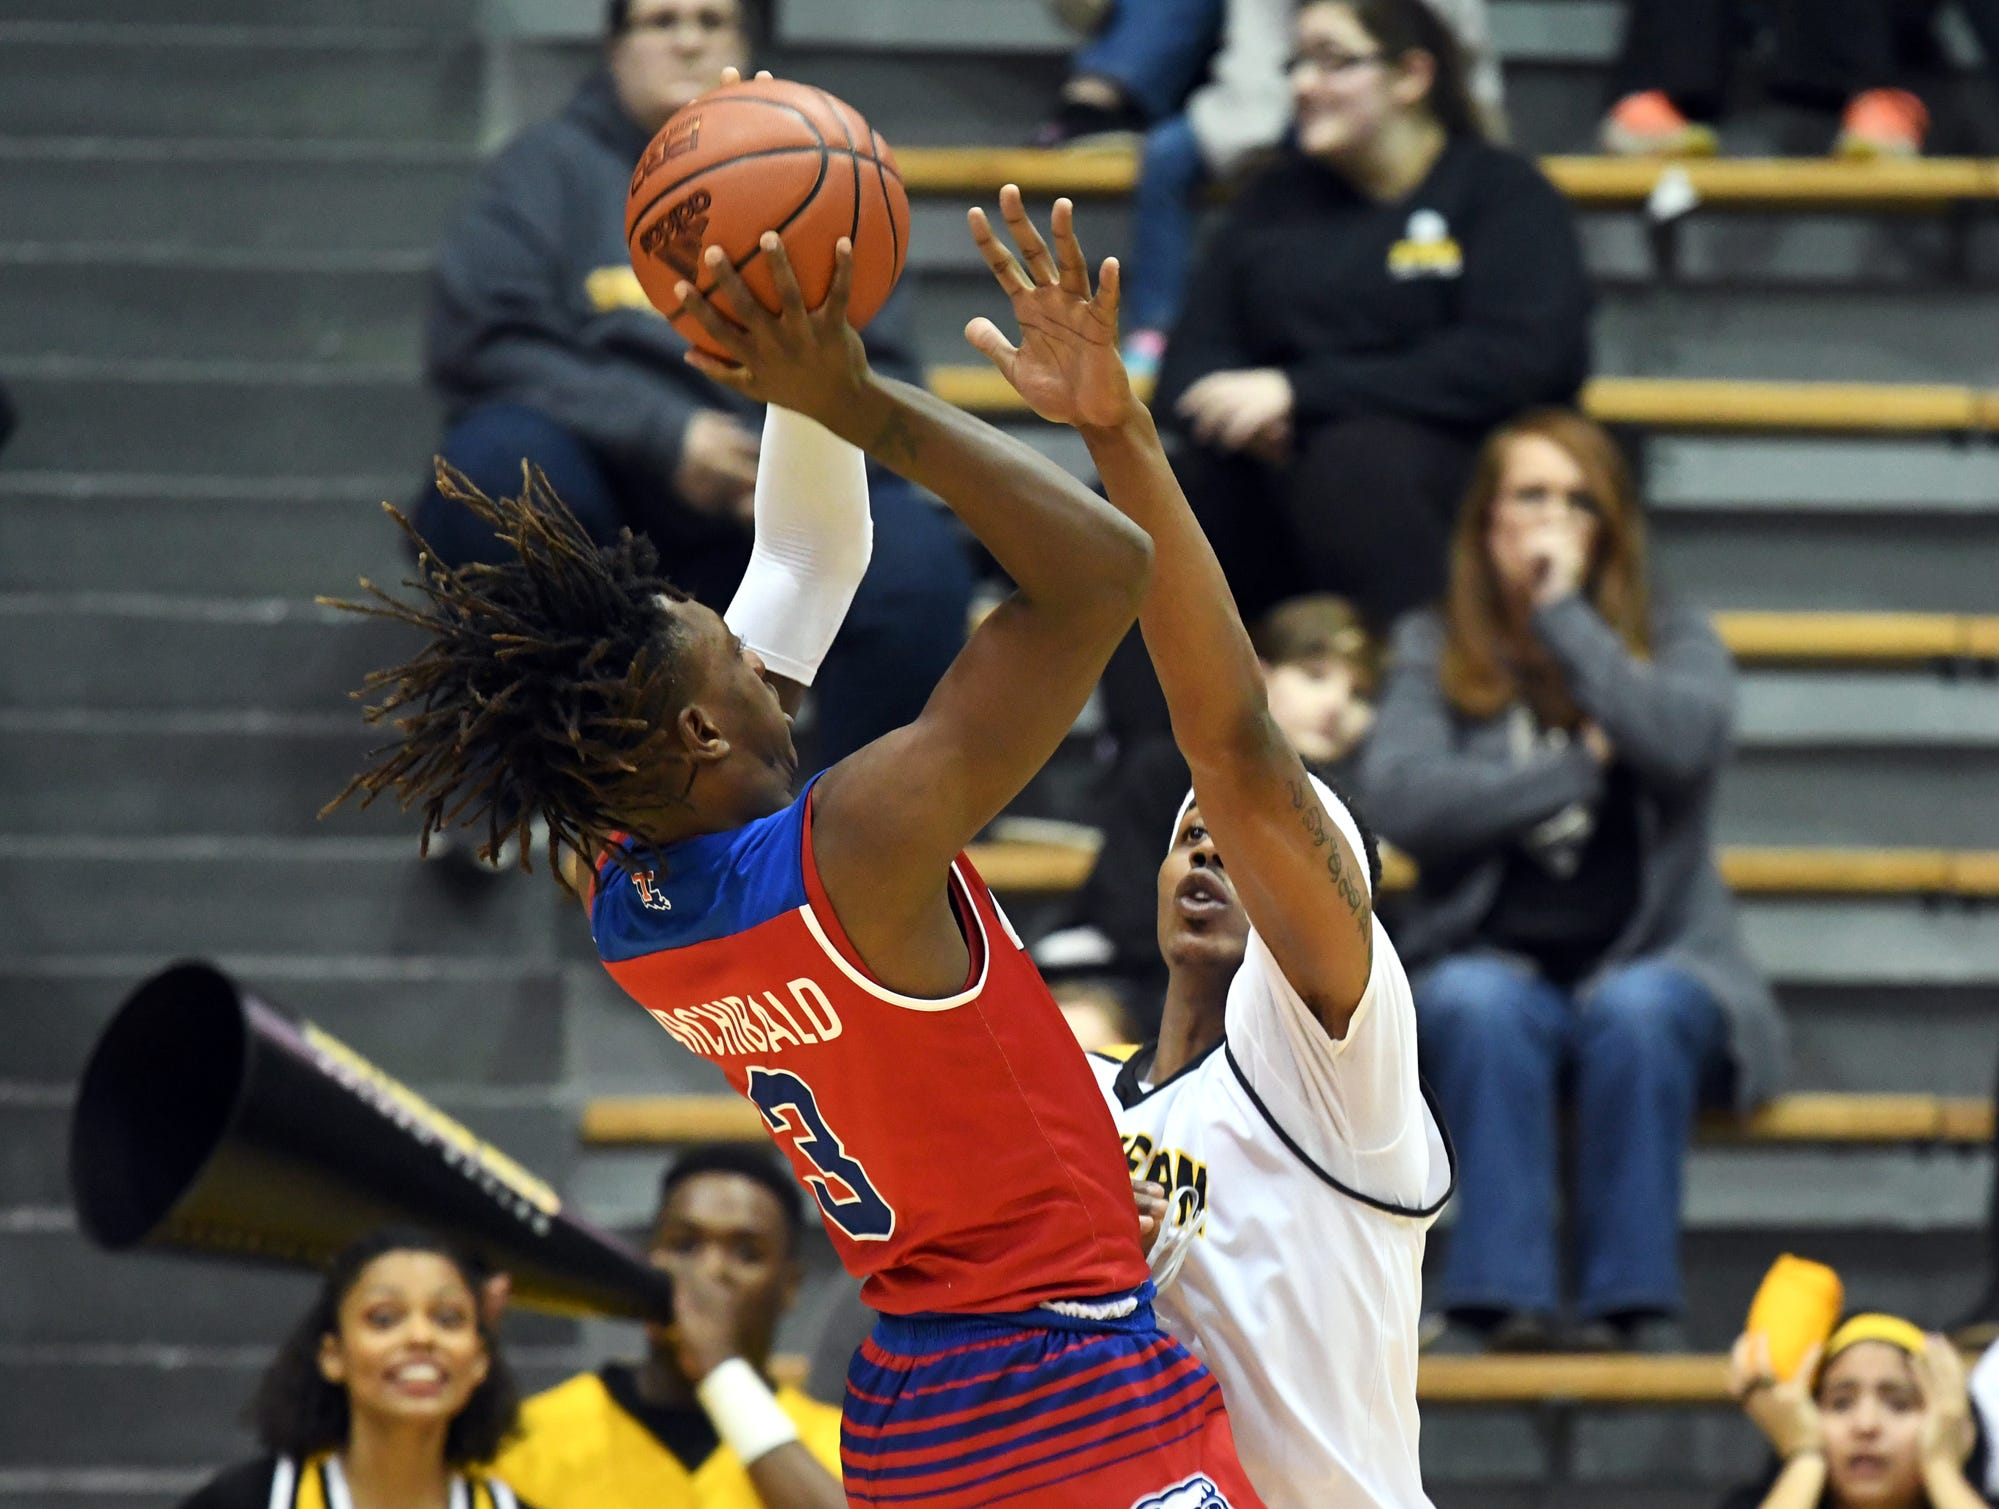 Southern Miss forward Leonard Harper-Baker attempts to block a pass in a game against Louisiana Tech in Reed Green Coliseum on Saturday, February 9, 2019.